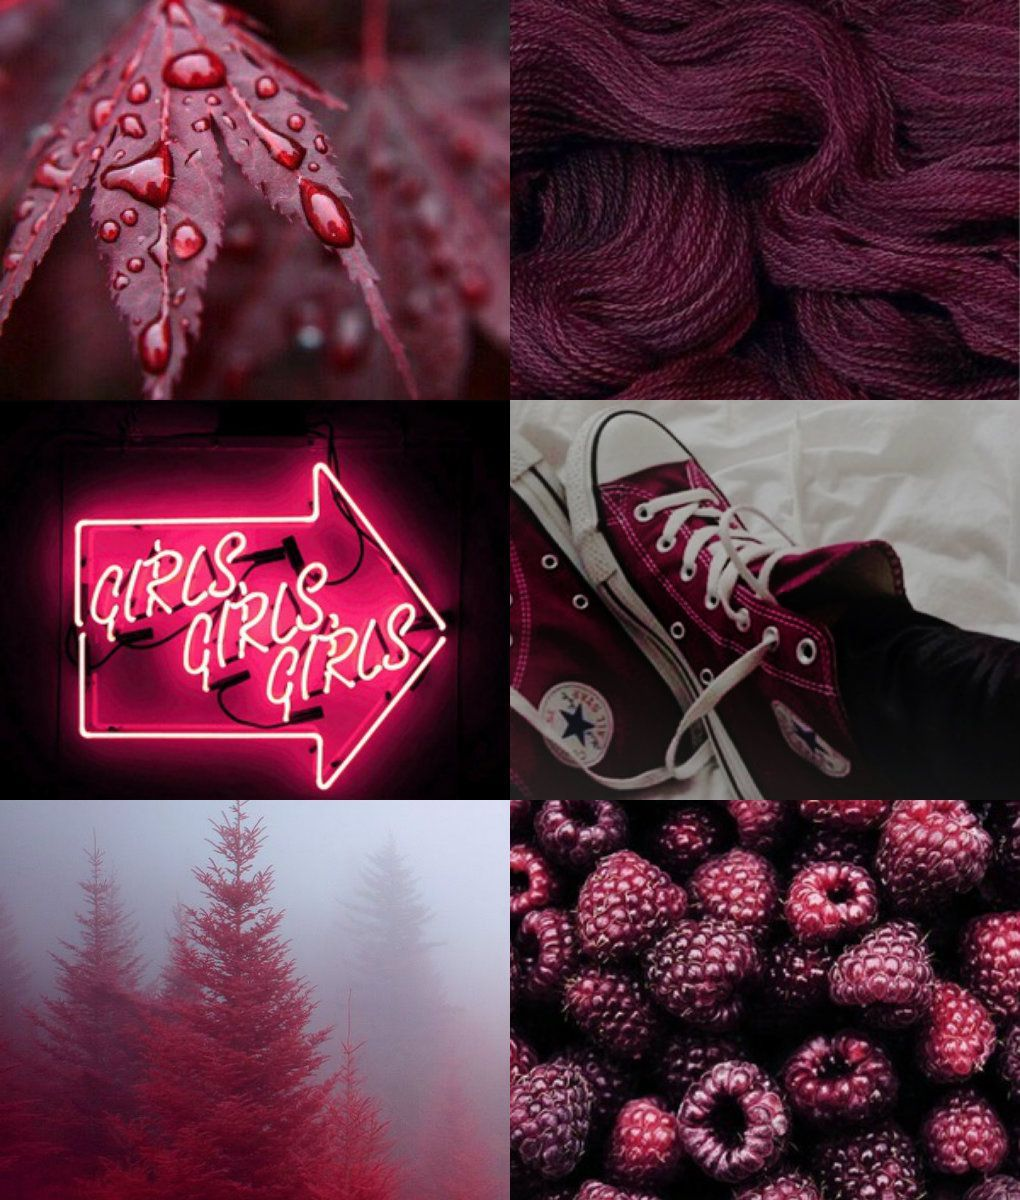 Maroon Aesthetic made by my friend